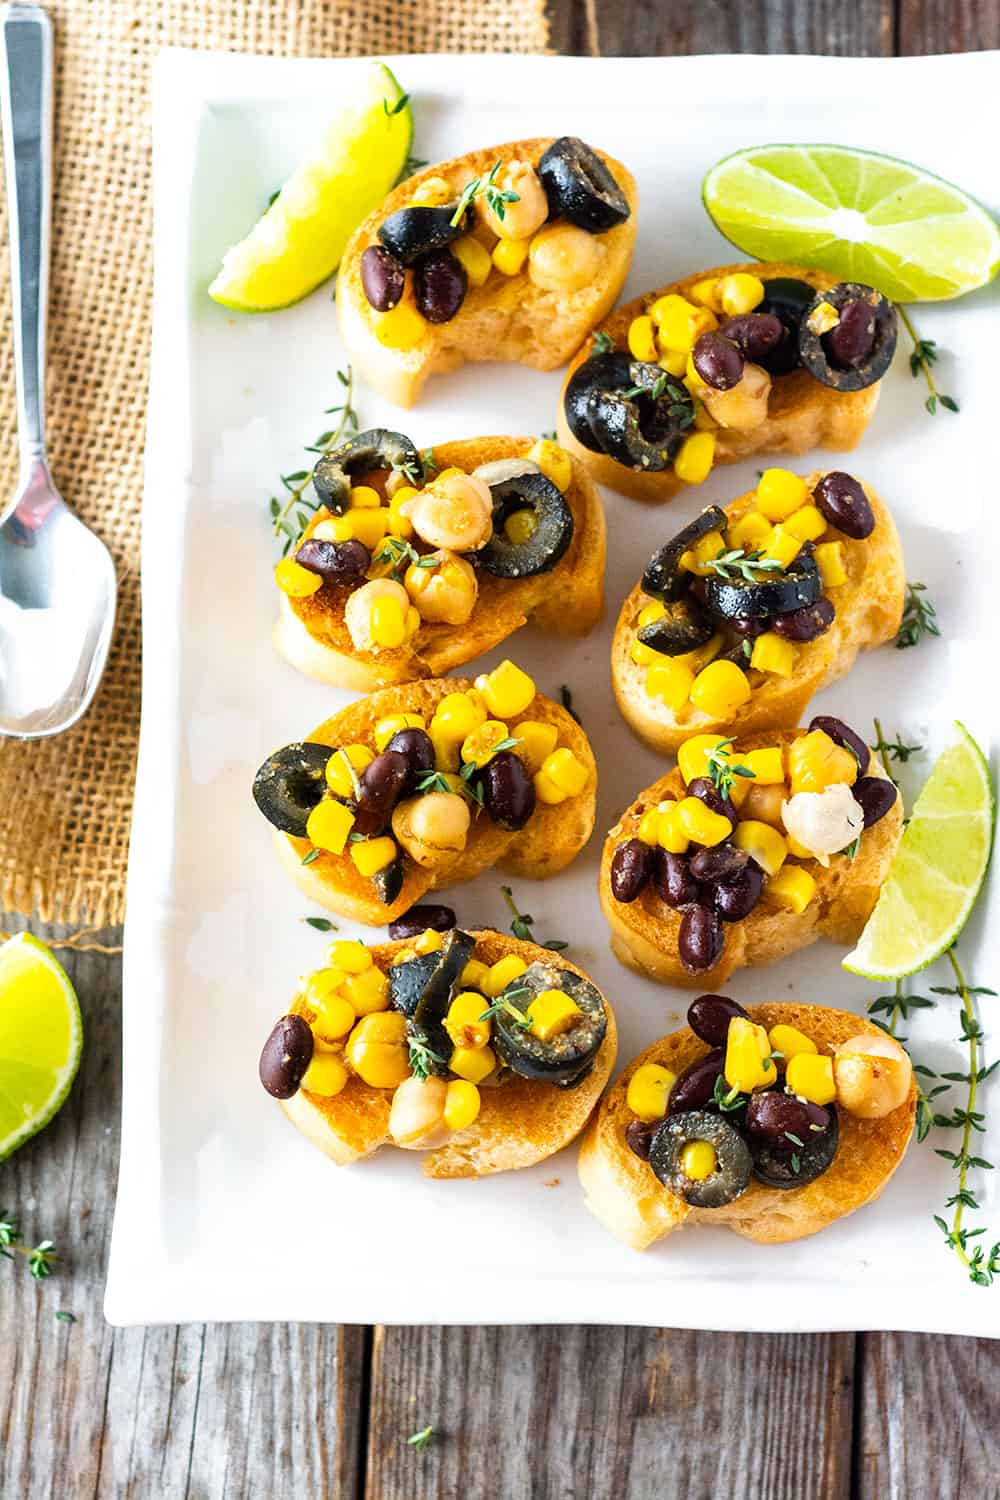 Chickpea Salad Crostini white platter overlay photo with crostini toasts topped with black beans, chickpea, corn., black olives and garnished with thyme and lime slices